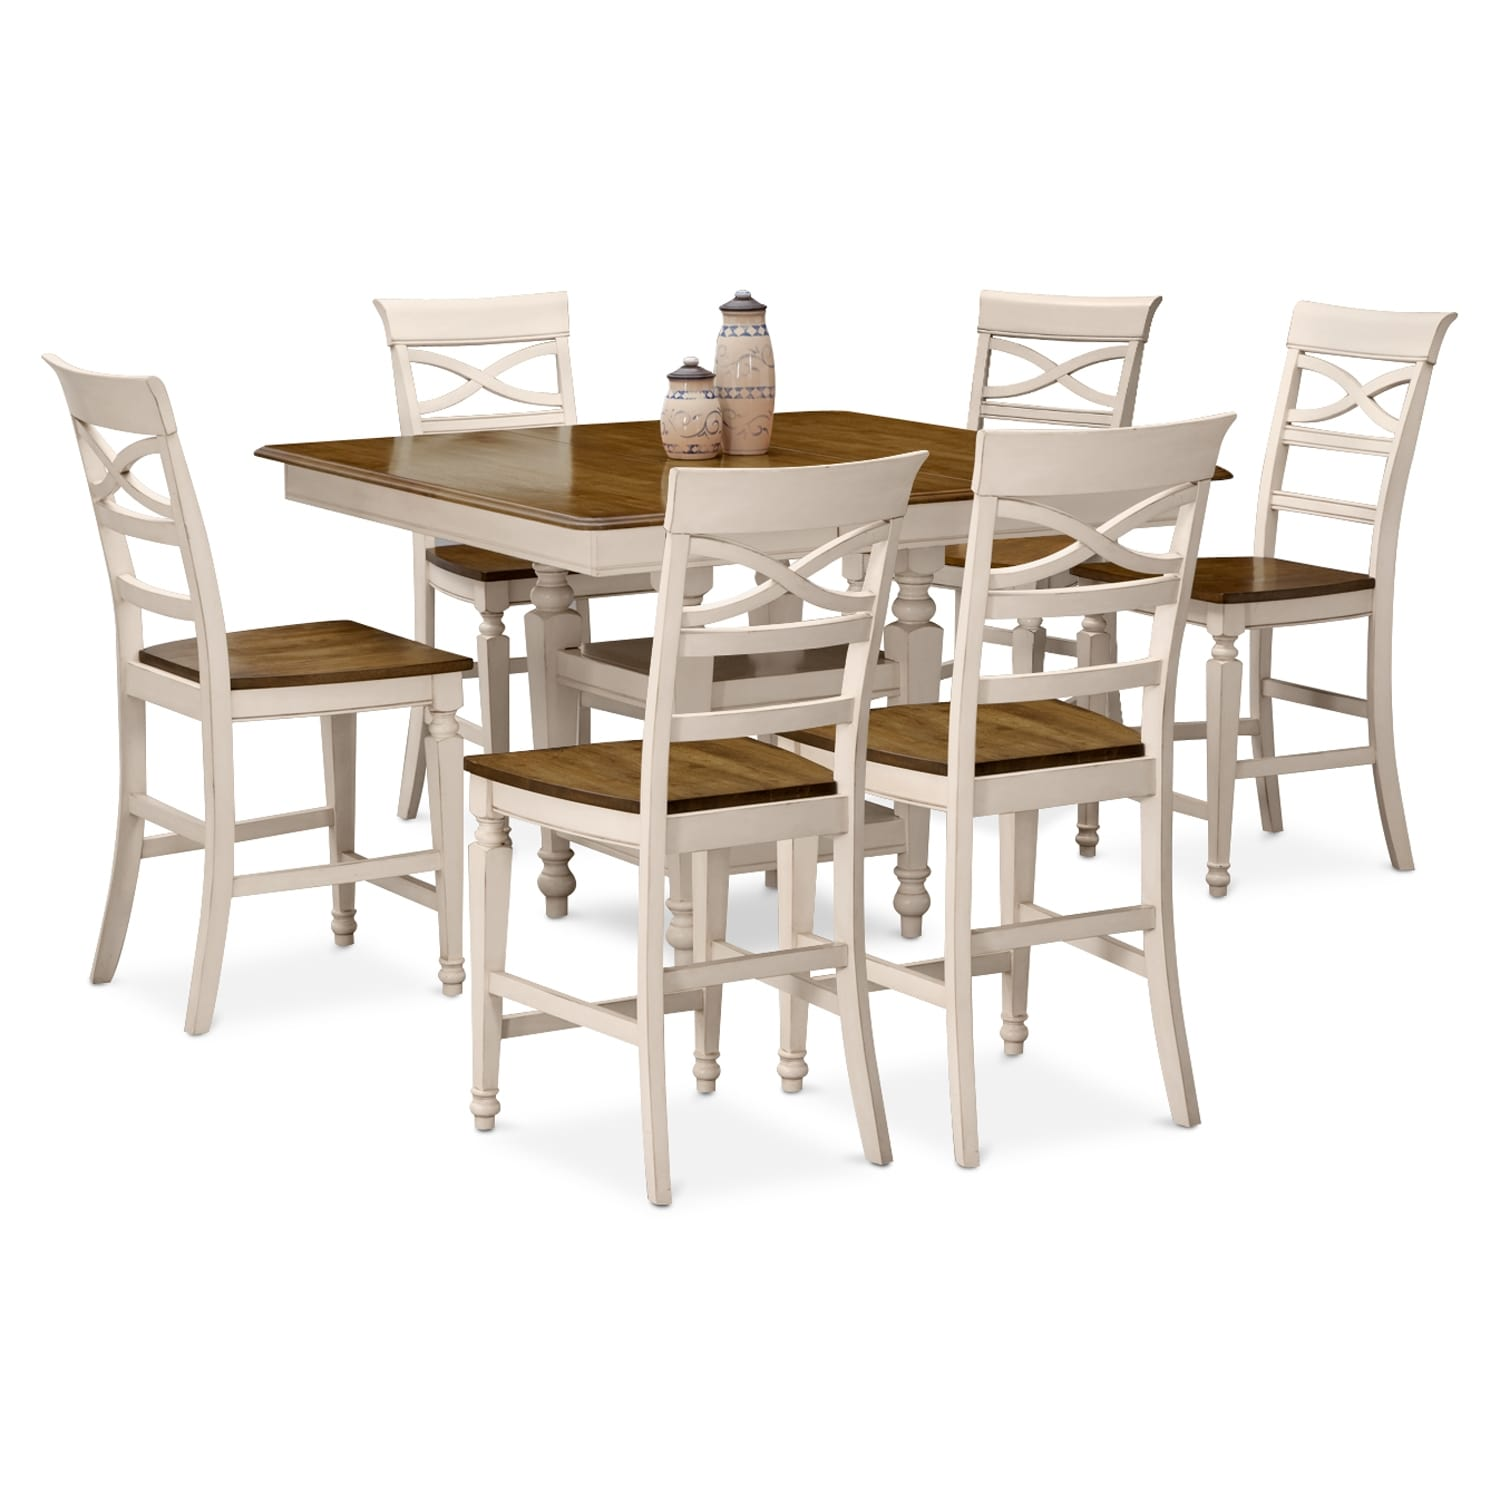 Sophie cream 7 pc counter height dining room for Dining room furniture images